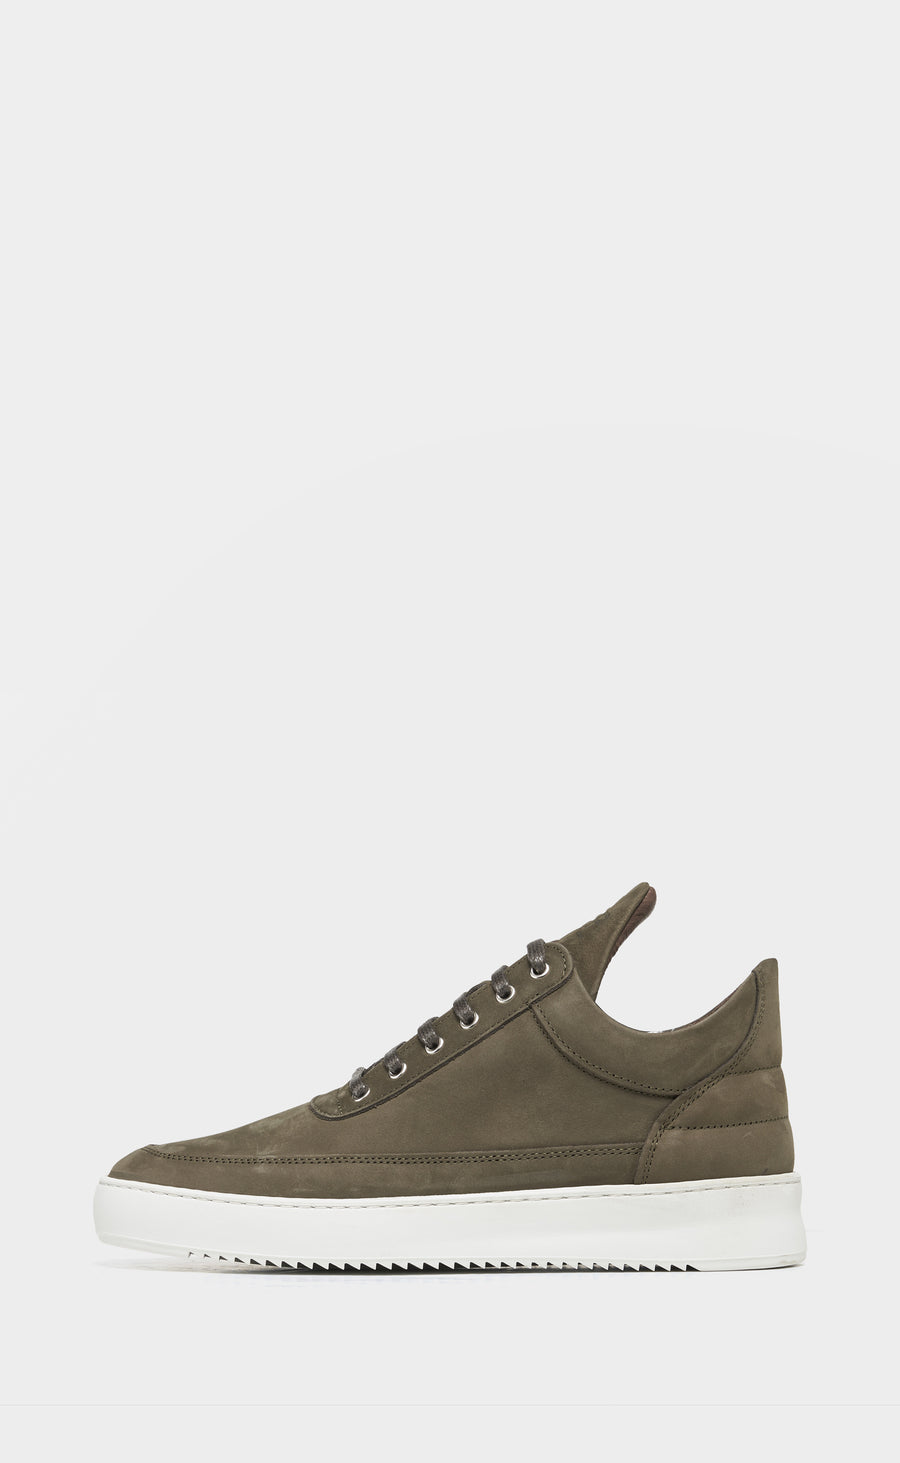 Low Top Ripple Nubuck Dark Green - men